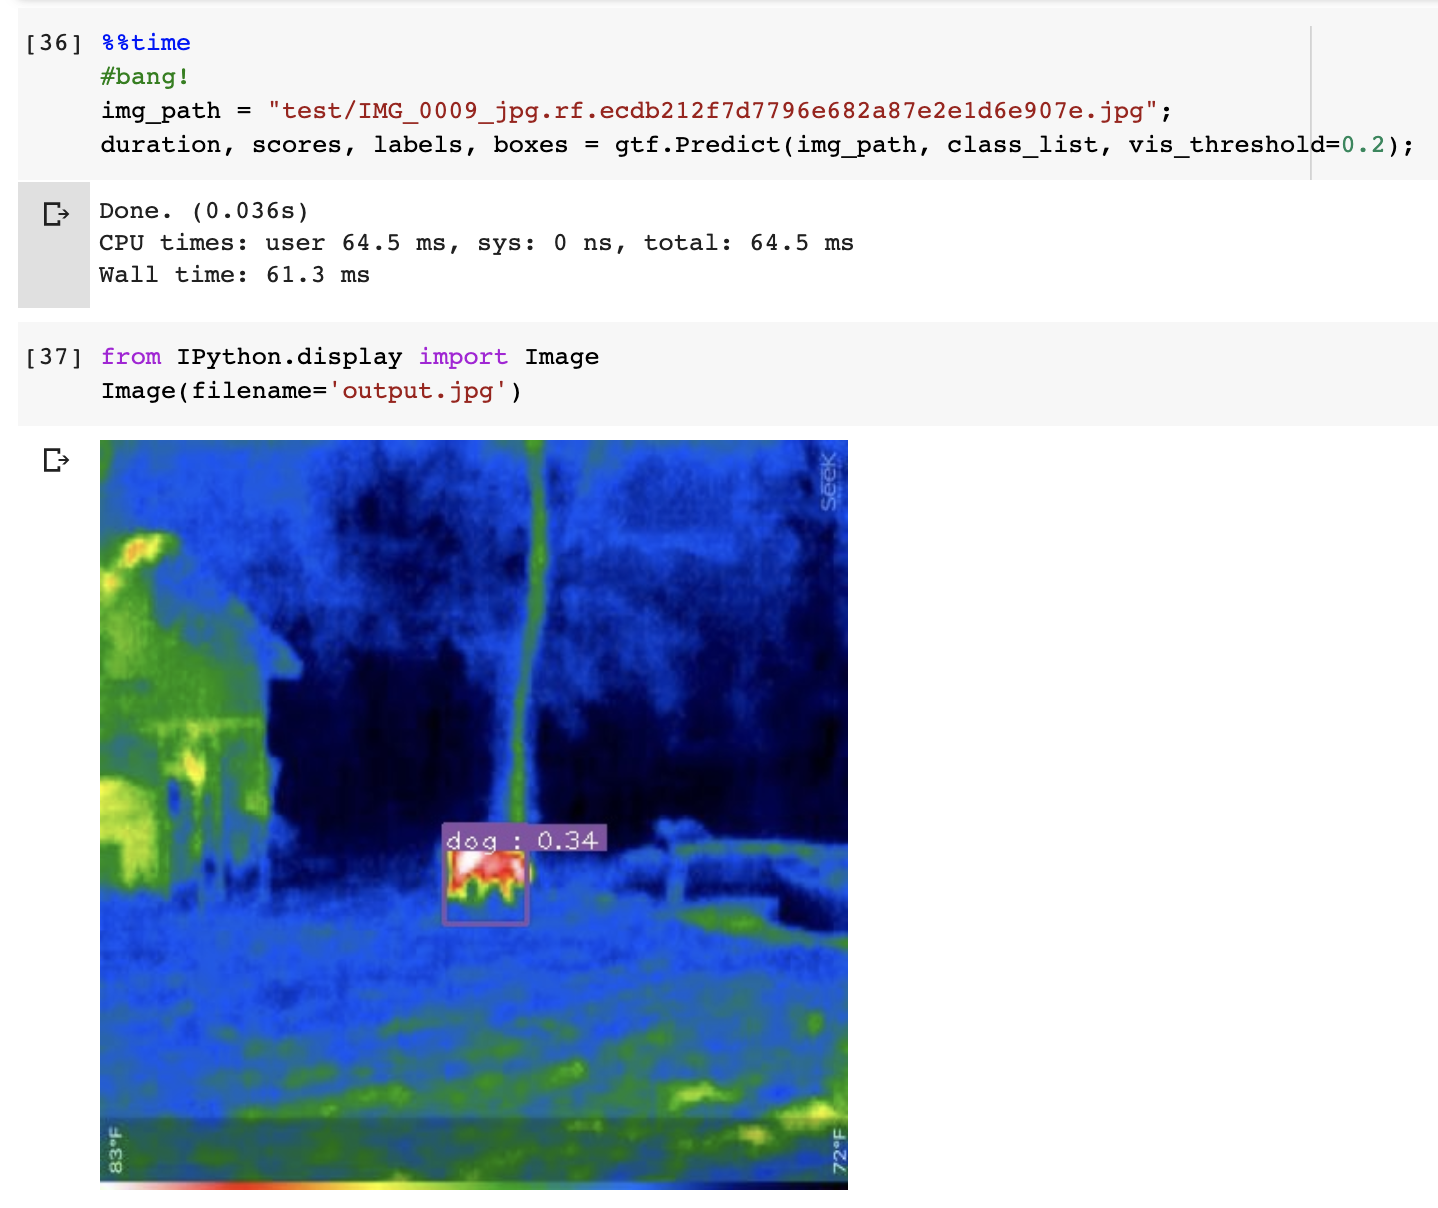 Jupyter Notebook screenshot: showing inference on a thermal image of a distant dog.